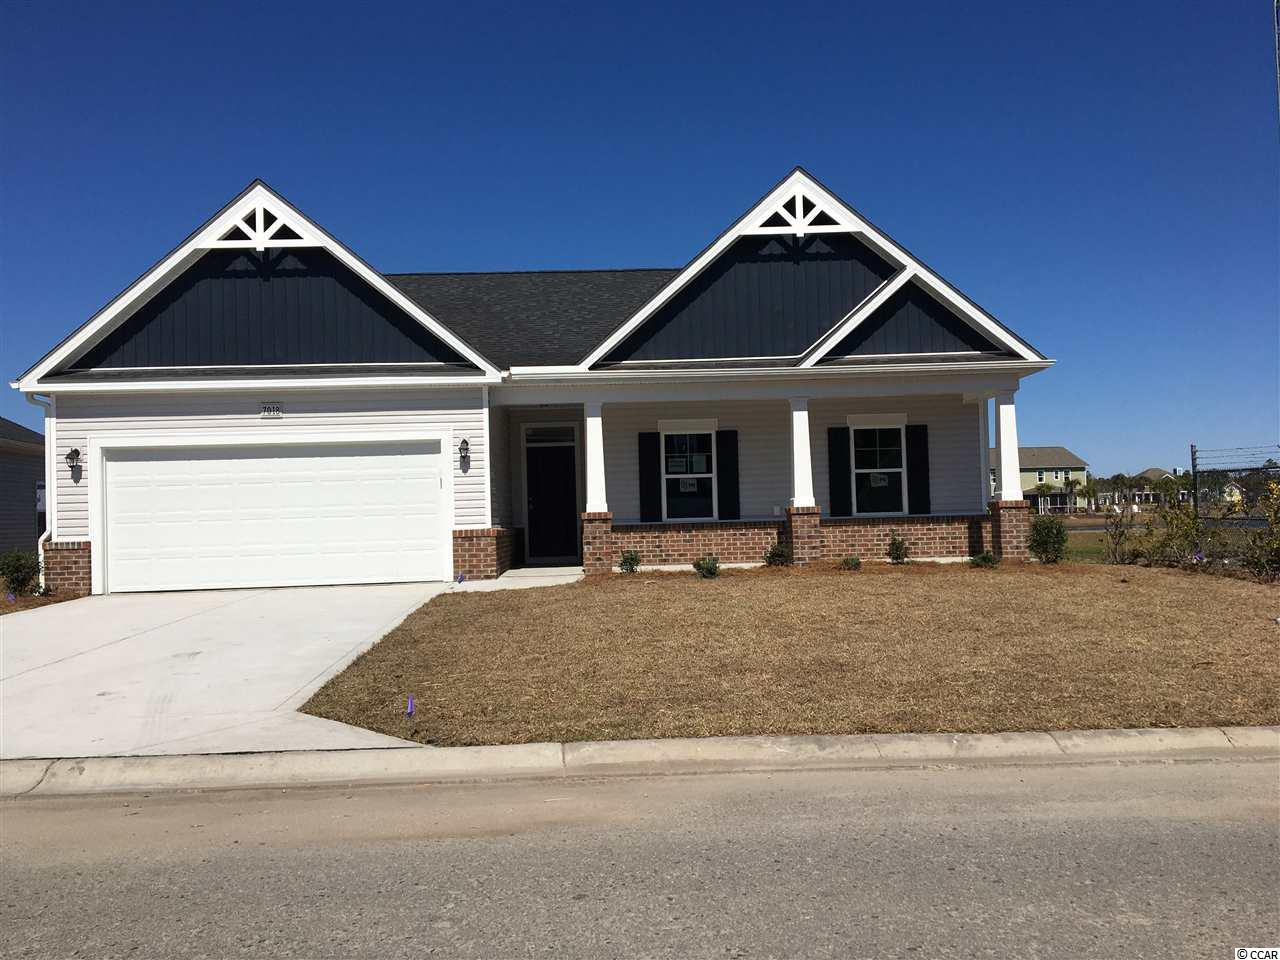 """This Frisco home plan is now offered in the beautiful community of Clear Pond at Myrtle Beach National. We are centrally located in the Carolina Forest area with easy access to all Myrtle Beach has to offer.  Lots of low country style with Large Front and Rear porches to enjoy your pond view. Walking distance to the completed amenity center with 2 pools, fitness, weight room, Club house and play ground. Low HOA fees.   This home has 3 bedrooms and 2 baths. Our design team has added the following features to this home: Additional can lights in the kitchen and Great room. Gas line for the Frigidaire traditional gas appliance package which includes the gas range, microwave, dishwasher and garbage disposal. Granite counter tops in the kitchen with large island and pendant lights. Crown molding on the kitchen cabinets which are in a Ivory color. 5"""" Laminate in the foyer, hall to bedrooms, family room and kitchen/casual dining areas. Tile in the baths and laundry. A ceiling fan has also been added to the Master bedroom and Great room. The Master has a 5' shower, double sinks and large walk in closet. Master also has a trey ceiling.   Picture for representation purposes only until this home is completed. Estimated completion March 2021."""